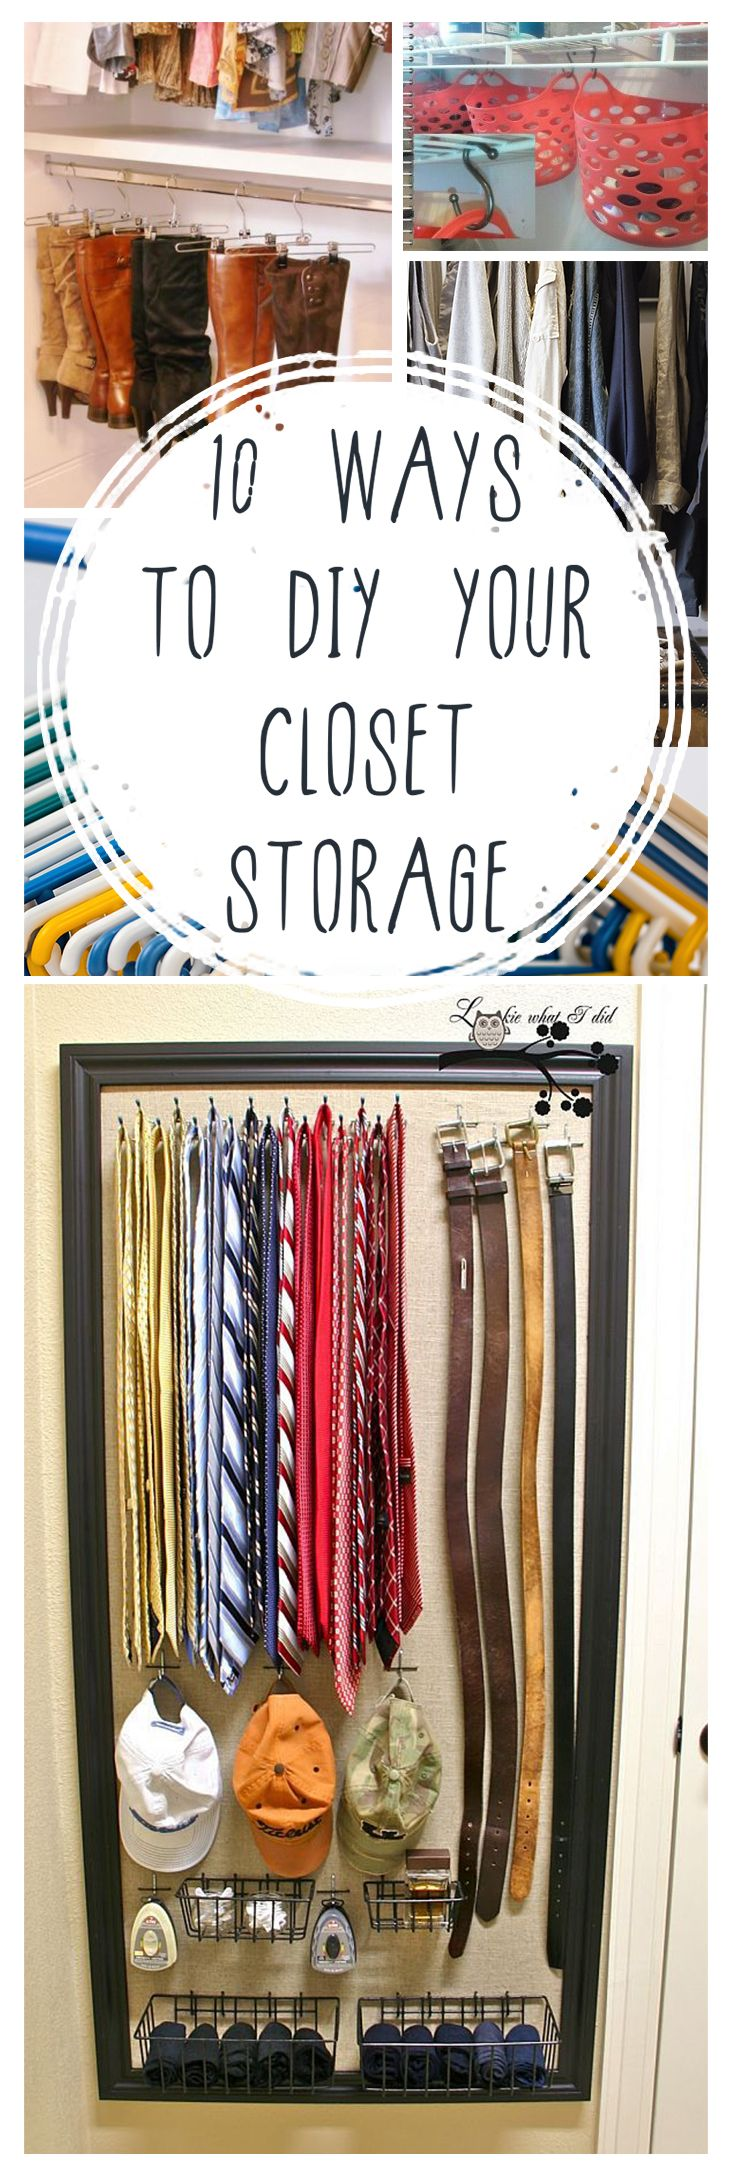 Closet storage 01 you are here home knobs pulls closet storage 01 - 10 Ways To Diy Your Closet Storage